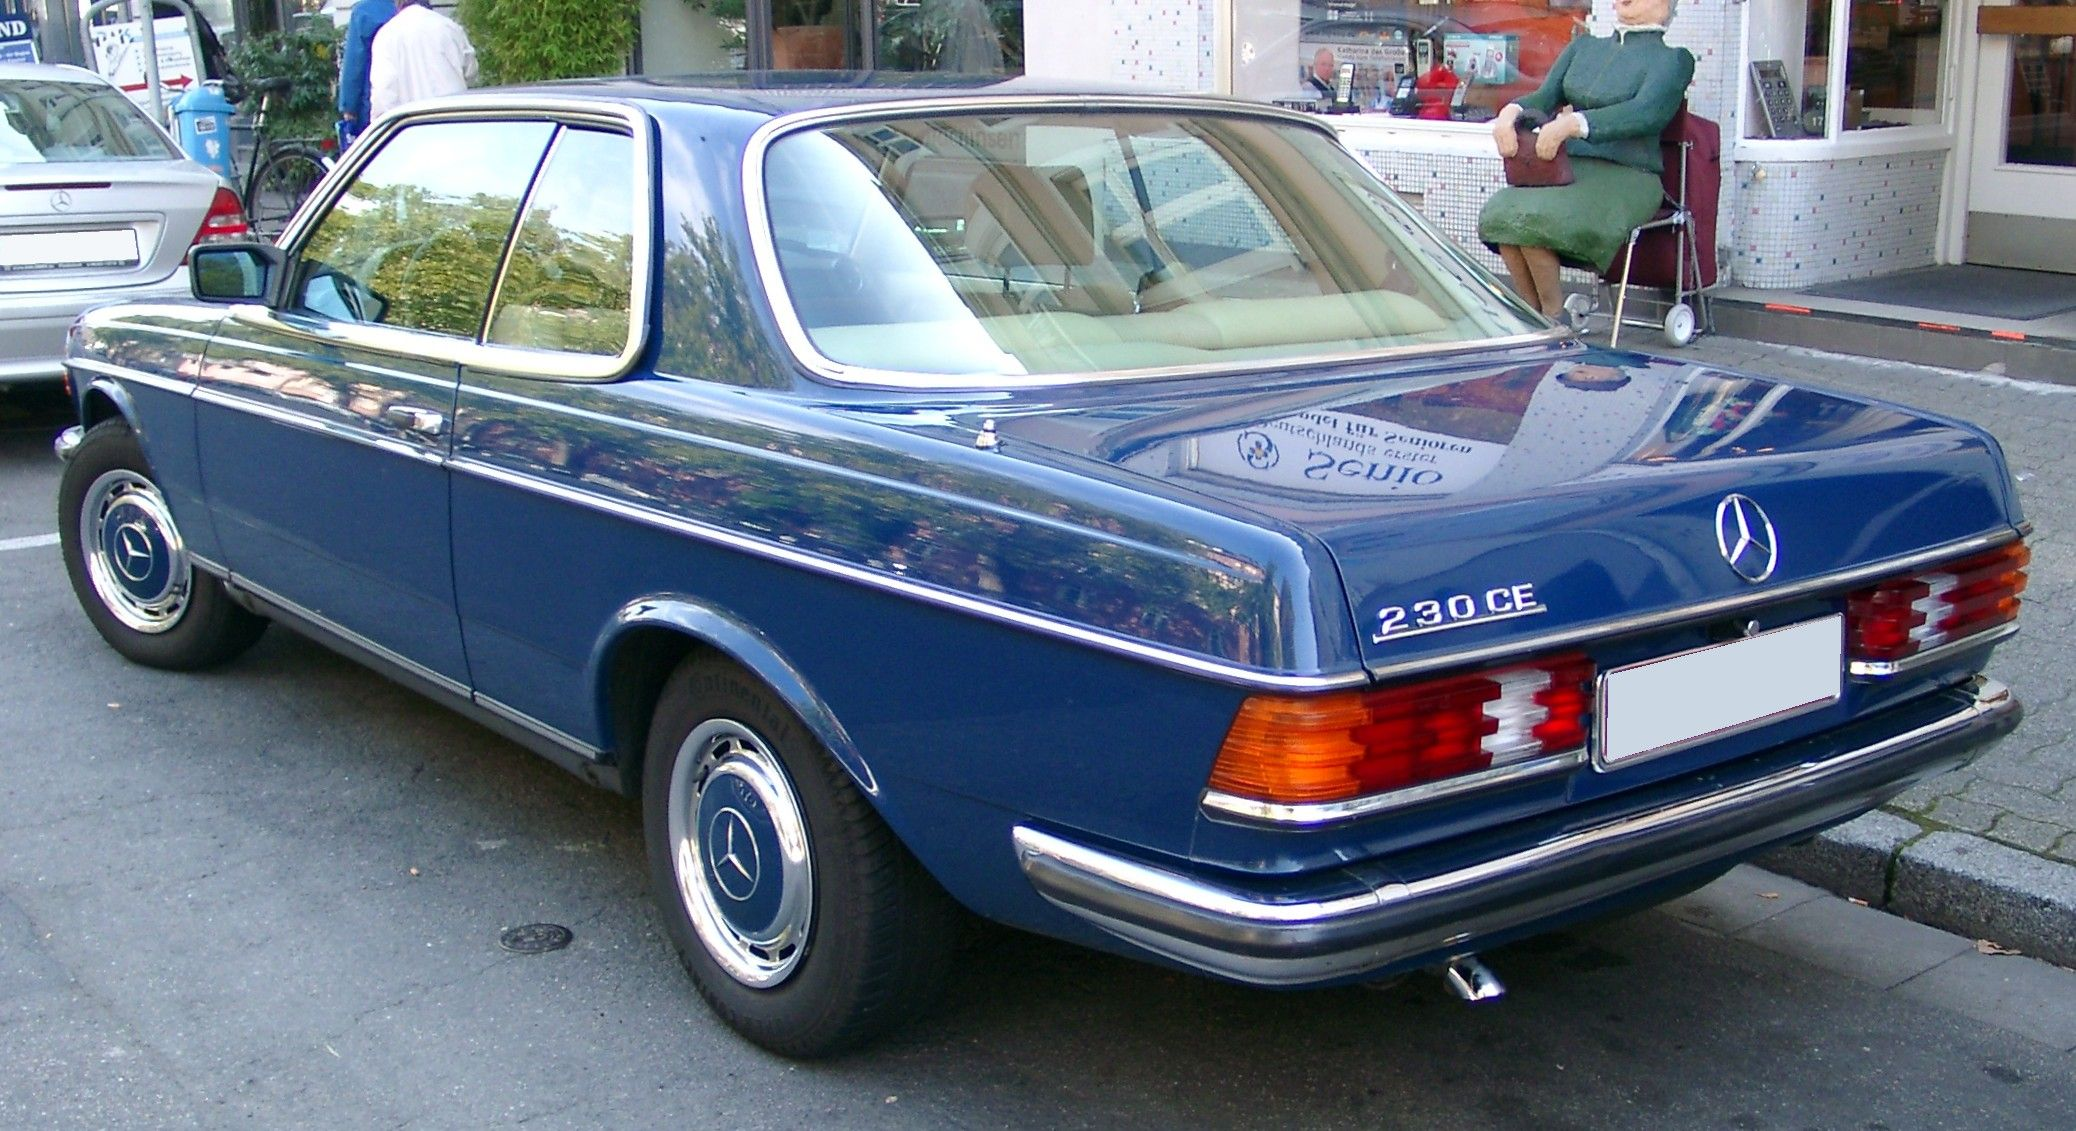 Mercedes benz w123 coupe mercedes w123 coupe pinterest for Mercedes benz w123